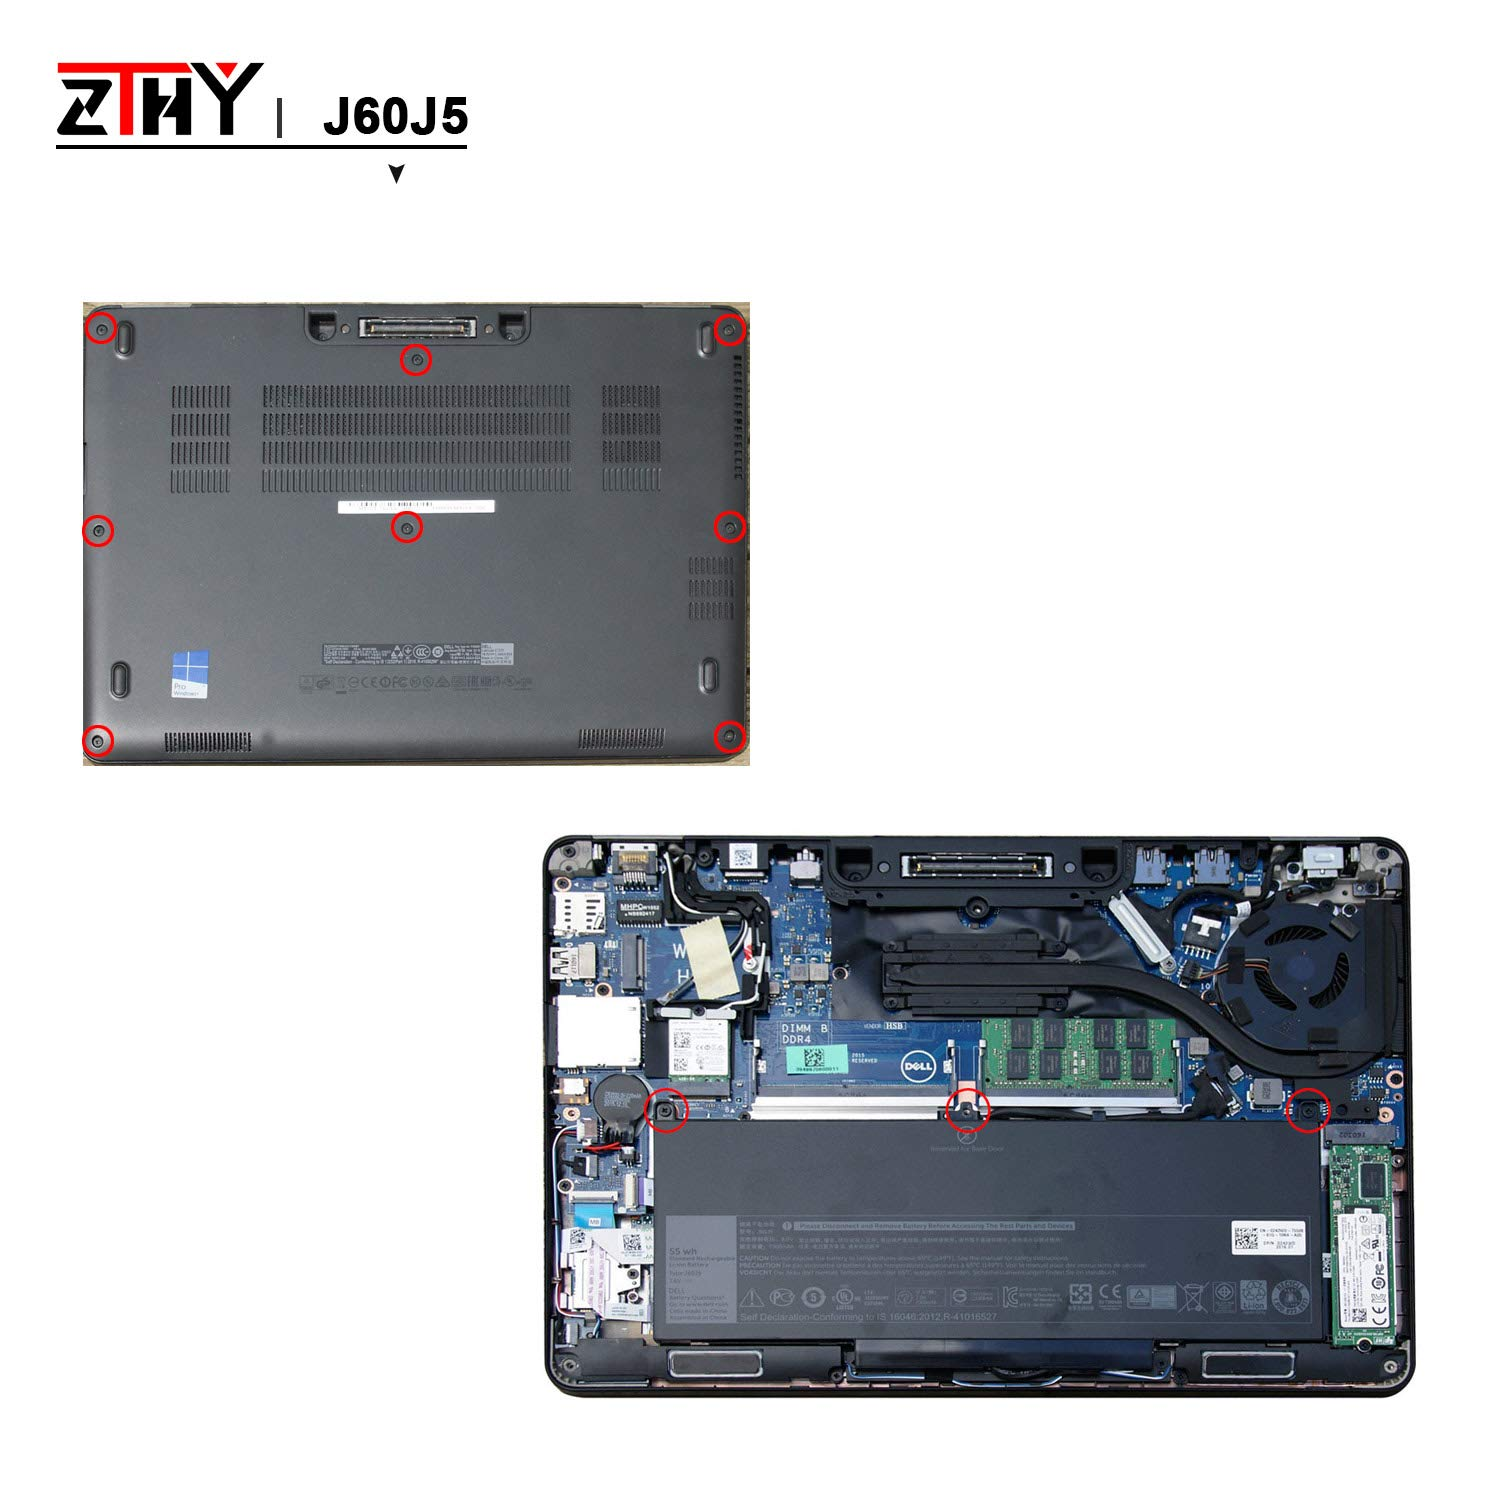 ZTHY J60J5 Laptop Battery Replacement for Dell Latitude E7270 E7470 Series Notebook R1V85 451-BBSX 451-BBSY 451-BBSU MC34Y 242WD PDNM2 7.6V 55WH by ZTHY (Image #7)